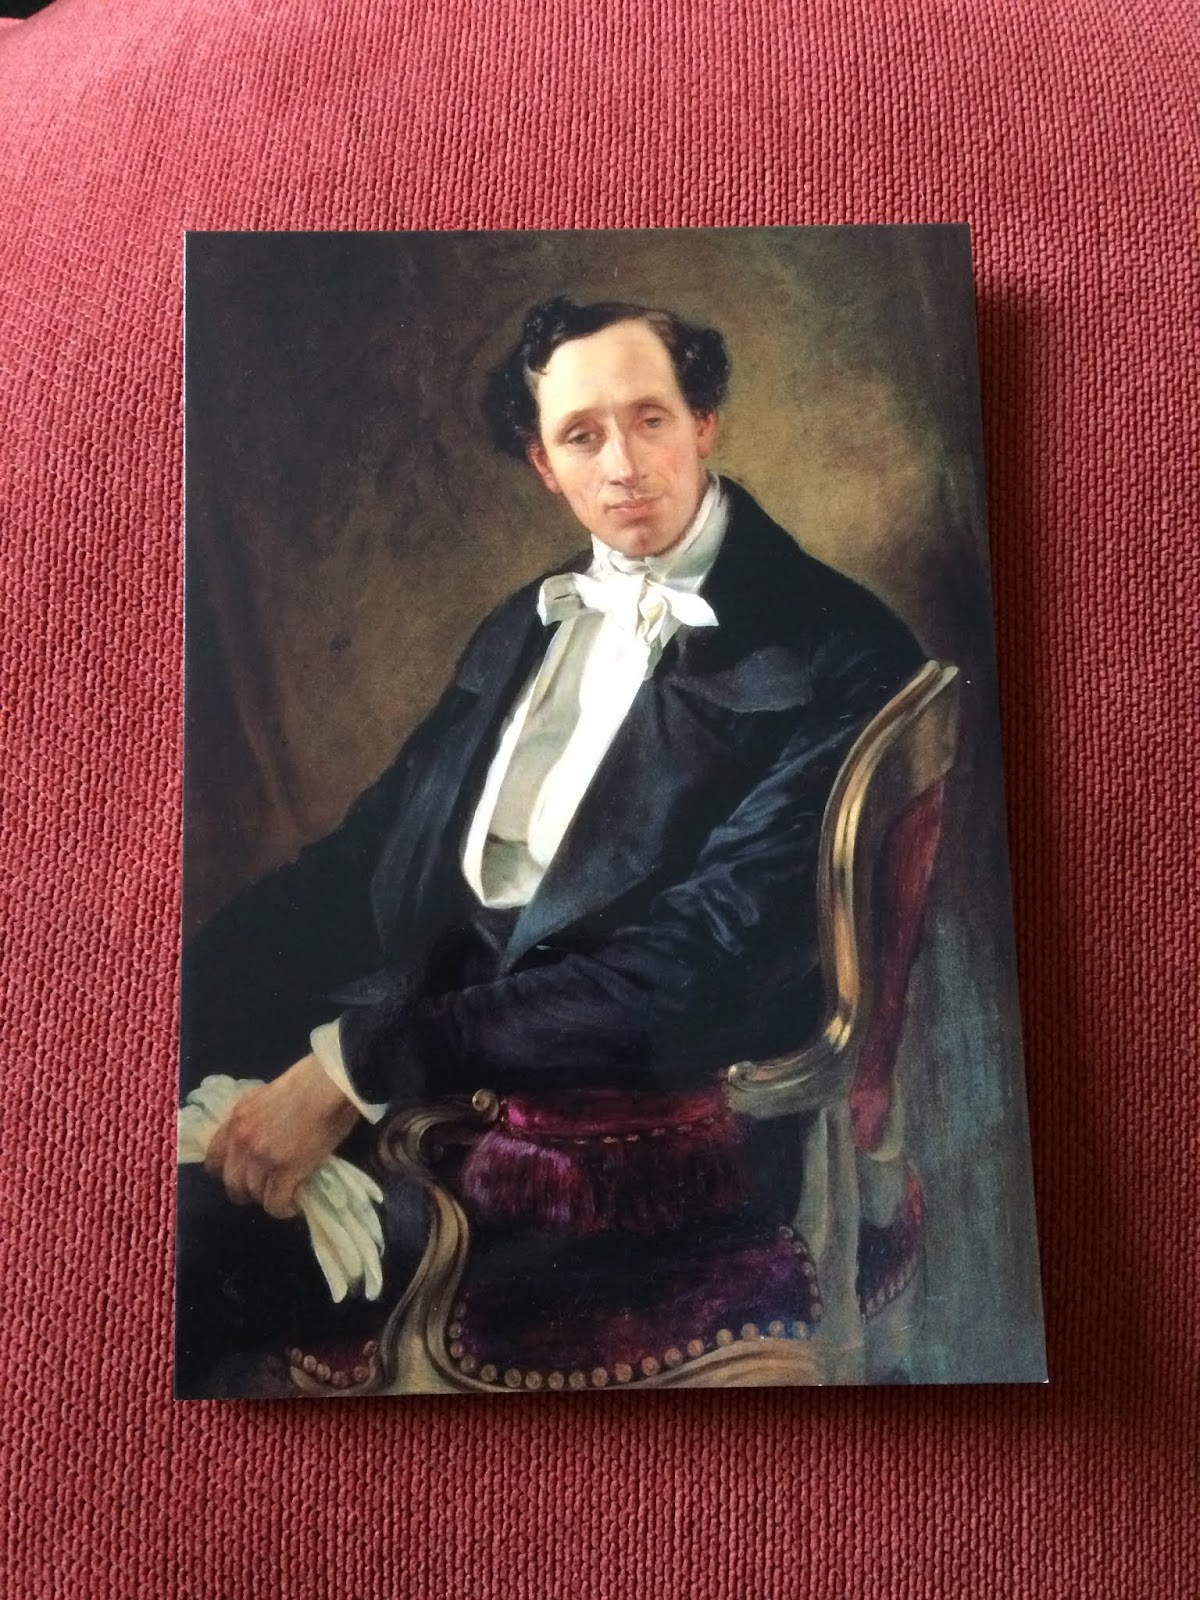 Postcard of a portrait of Hans Christian Andersen by Elisabeth Jerichau-Baumann